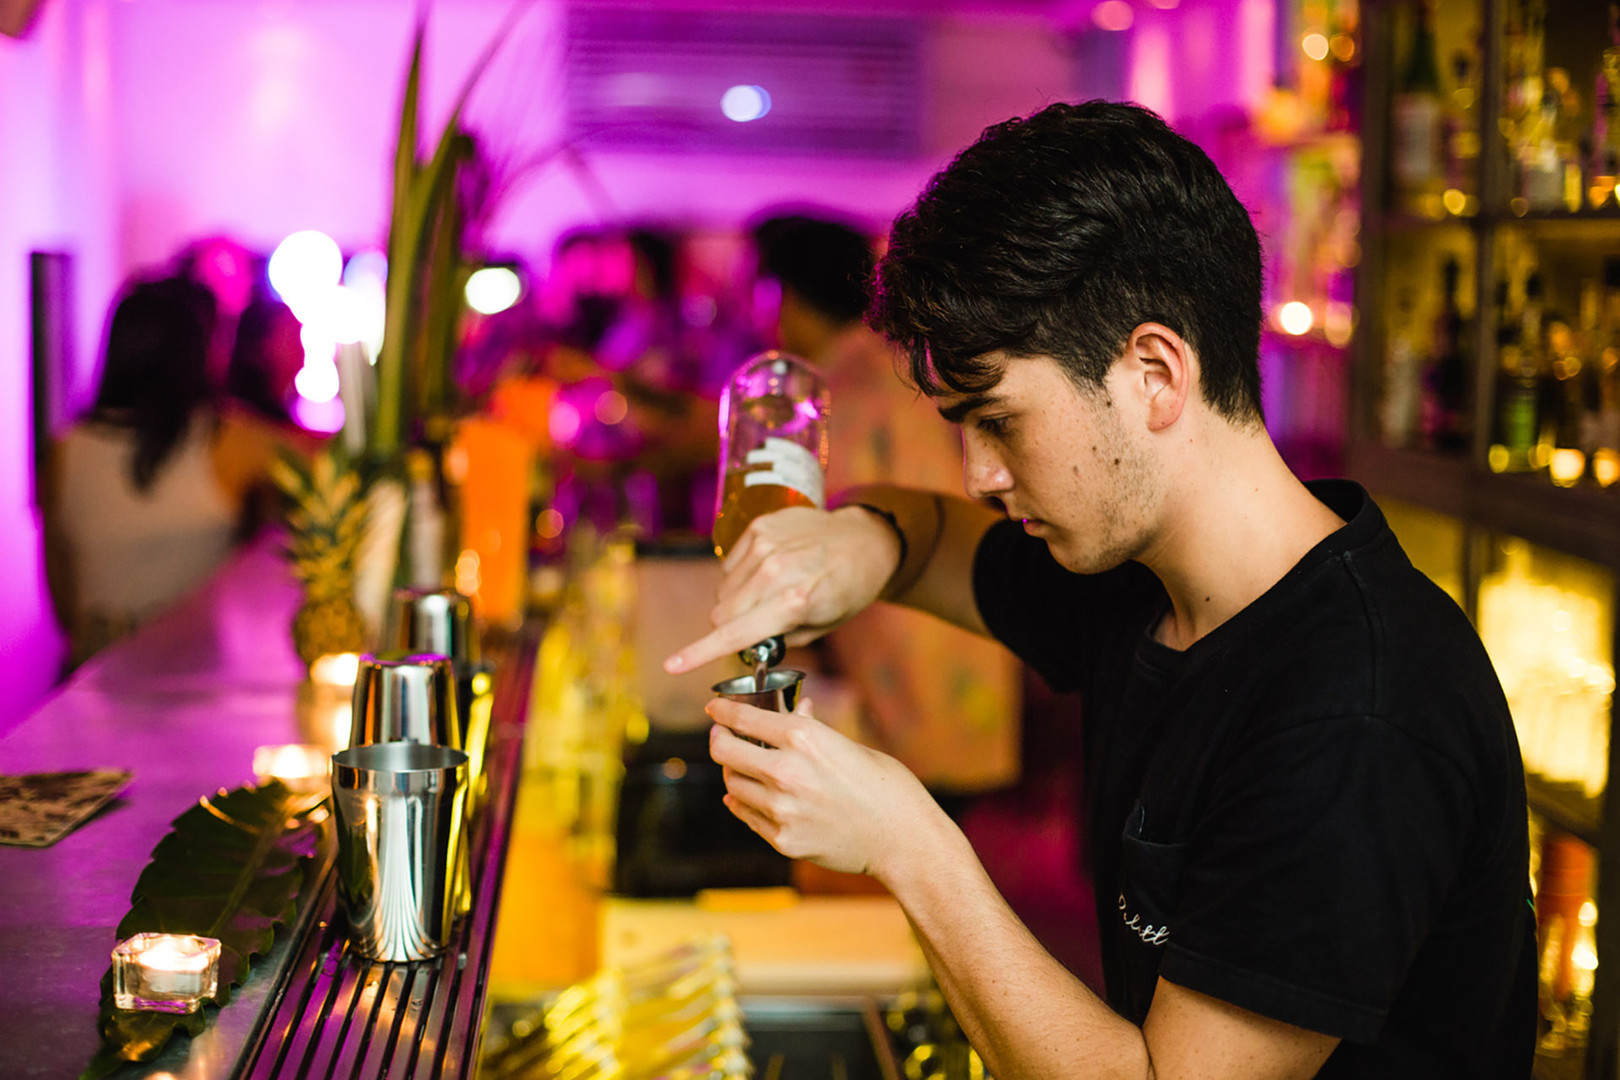 Tropic City Head Bartender - Arron